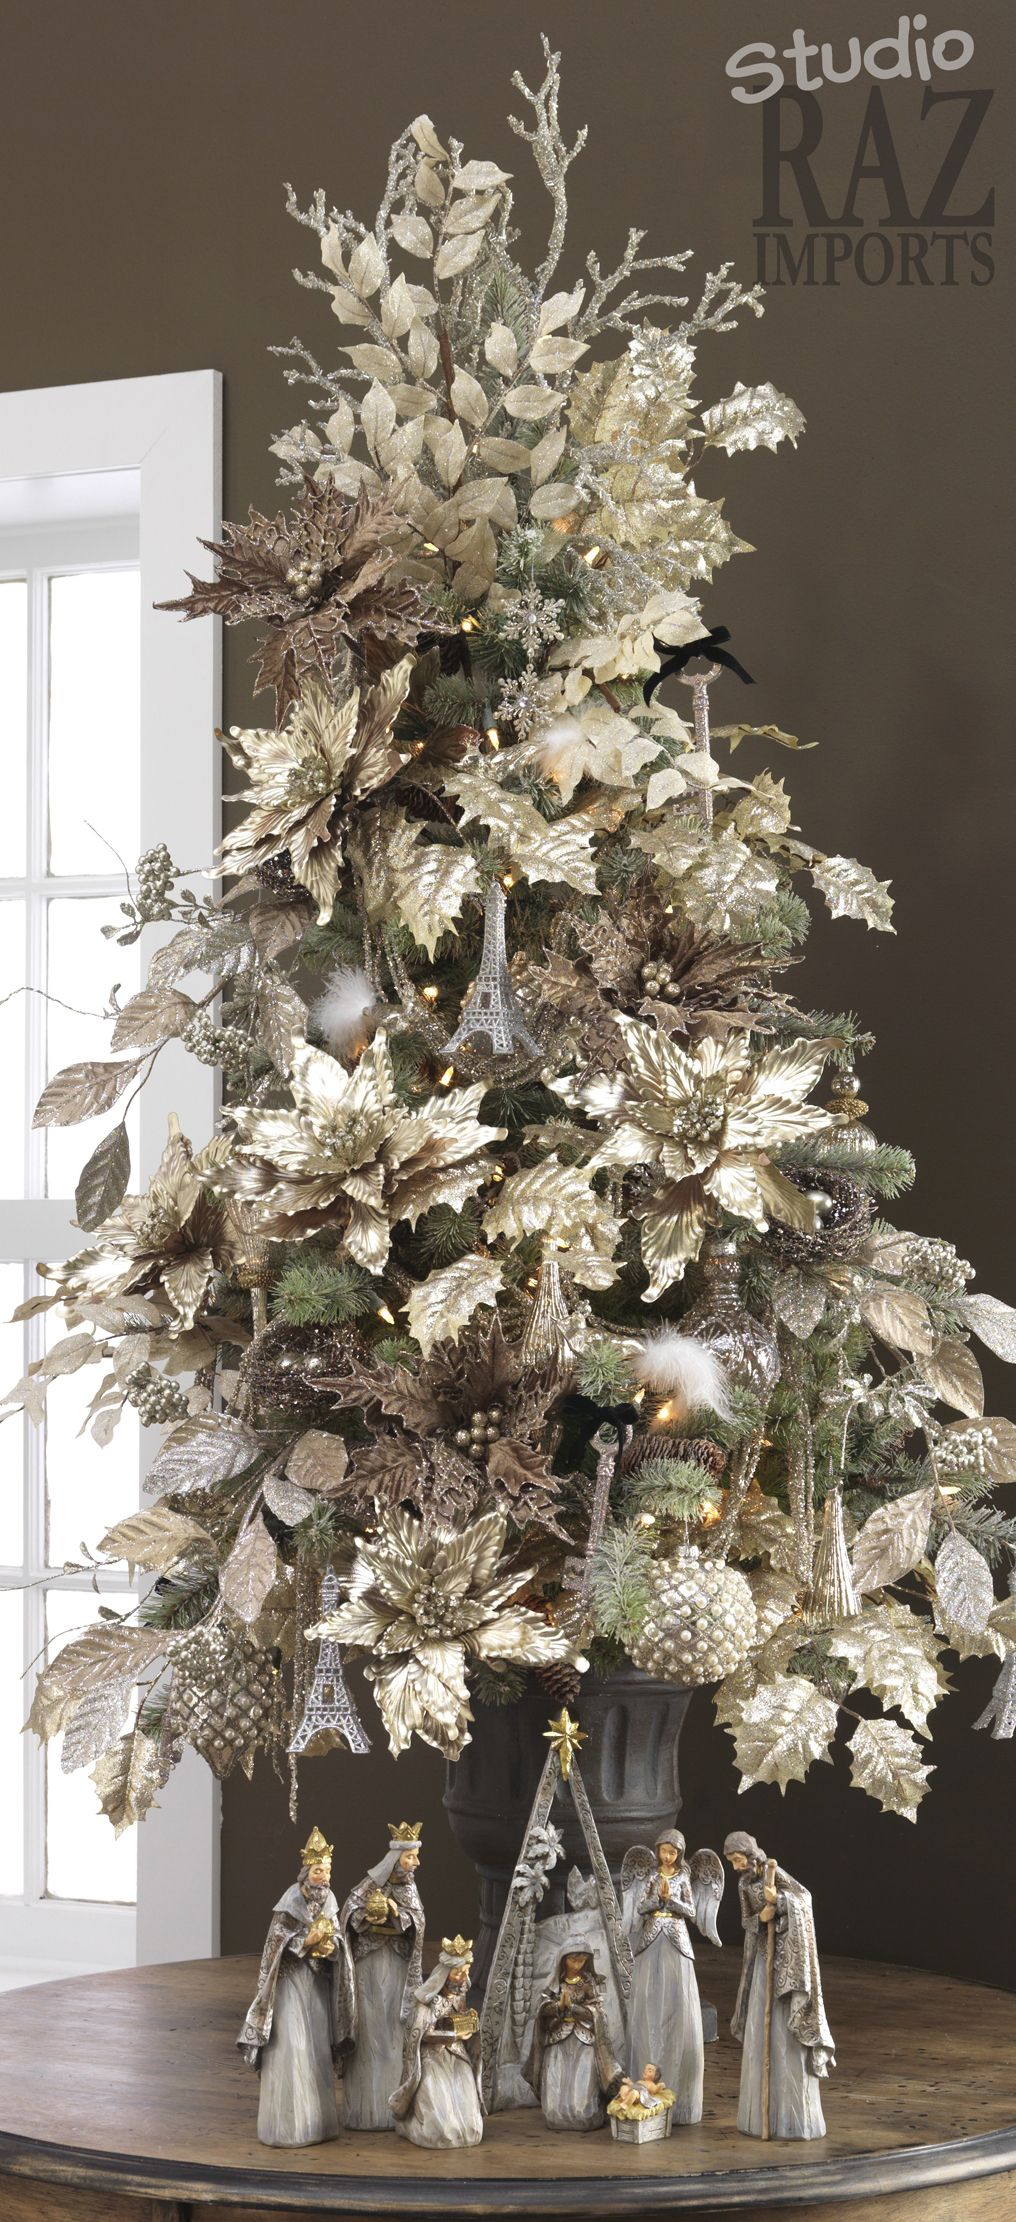 White Christmas Tree Decorated With Light Gold Silk Poinsettias Bebe Love The Nati Gold Christmas Tree Decorations Holiday Christmas Tree Christmas Tree